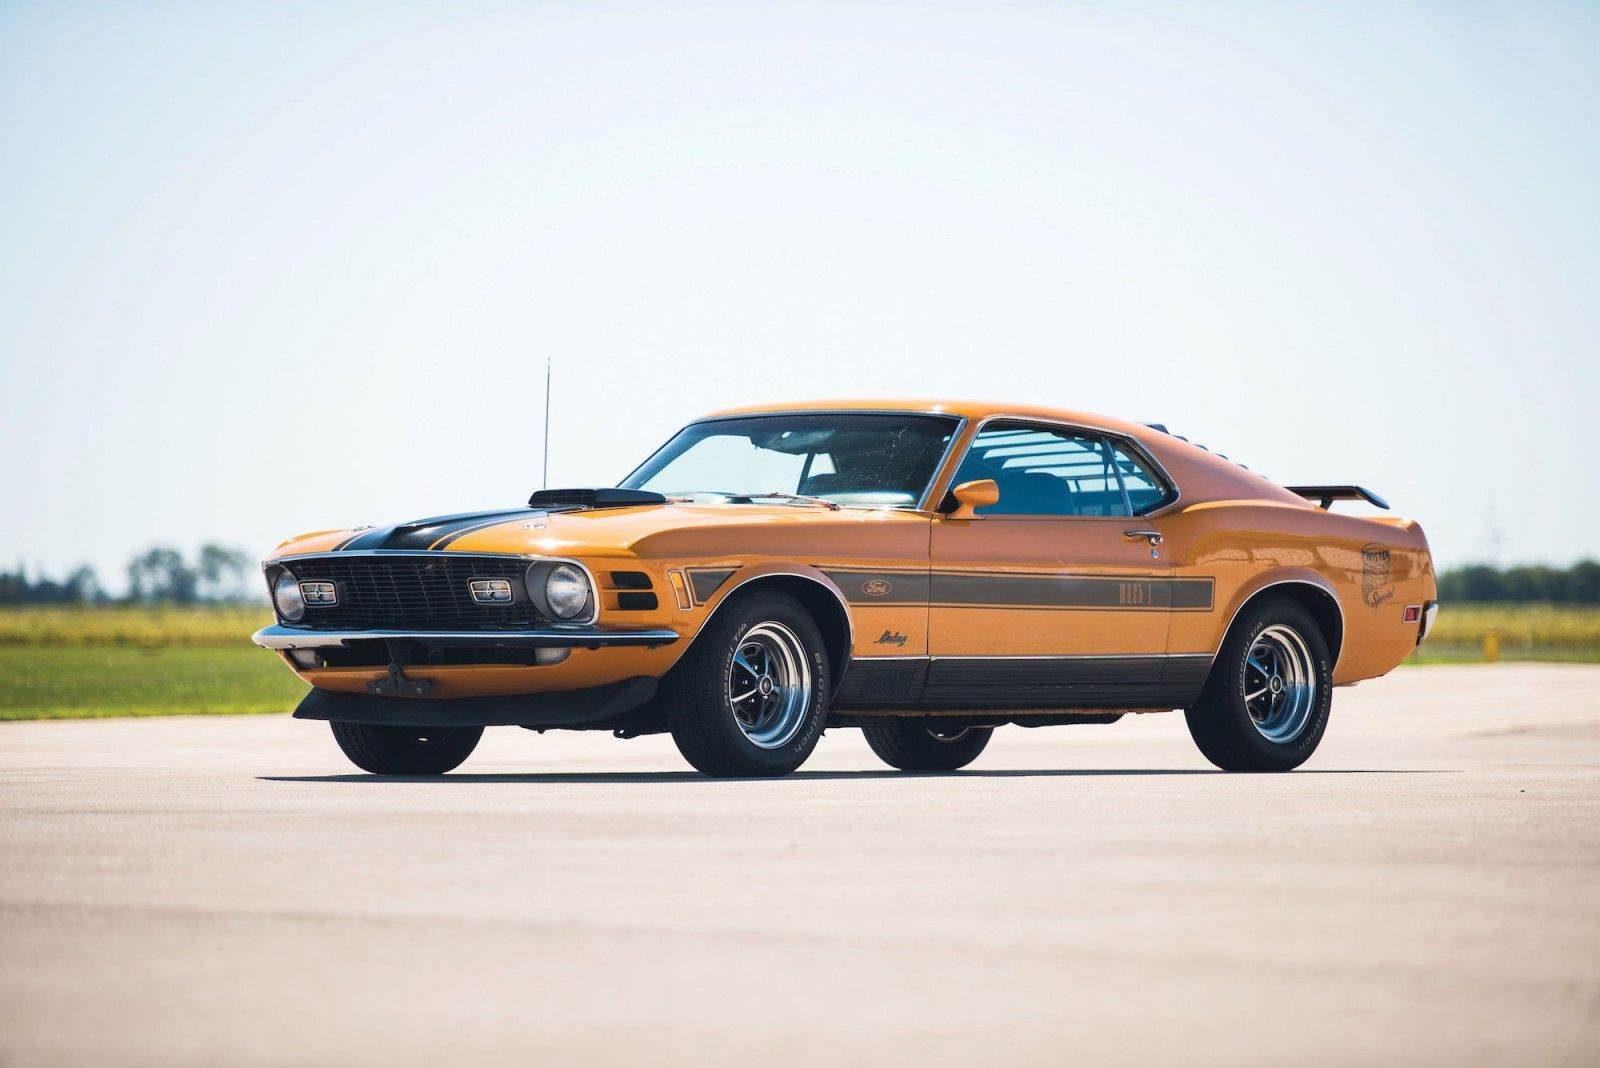 Ford Mustang Mach 1 Twister | Mach 1\'s | Pinterest | Ford mustang ...